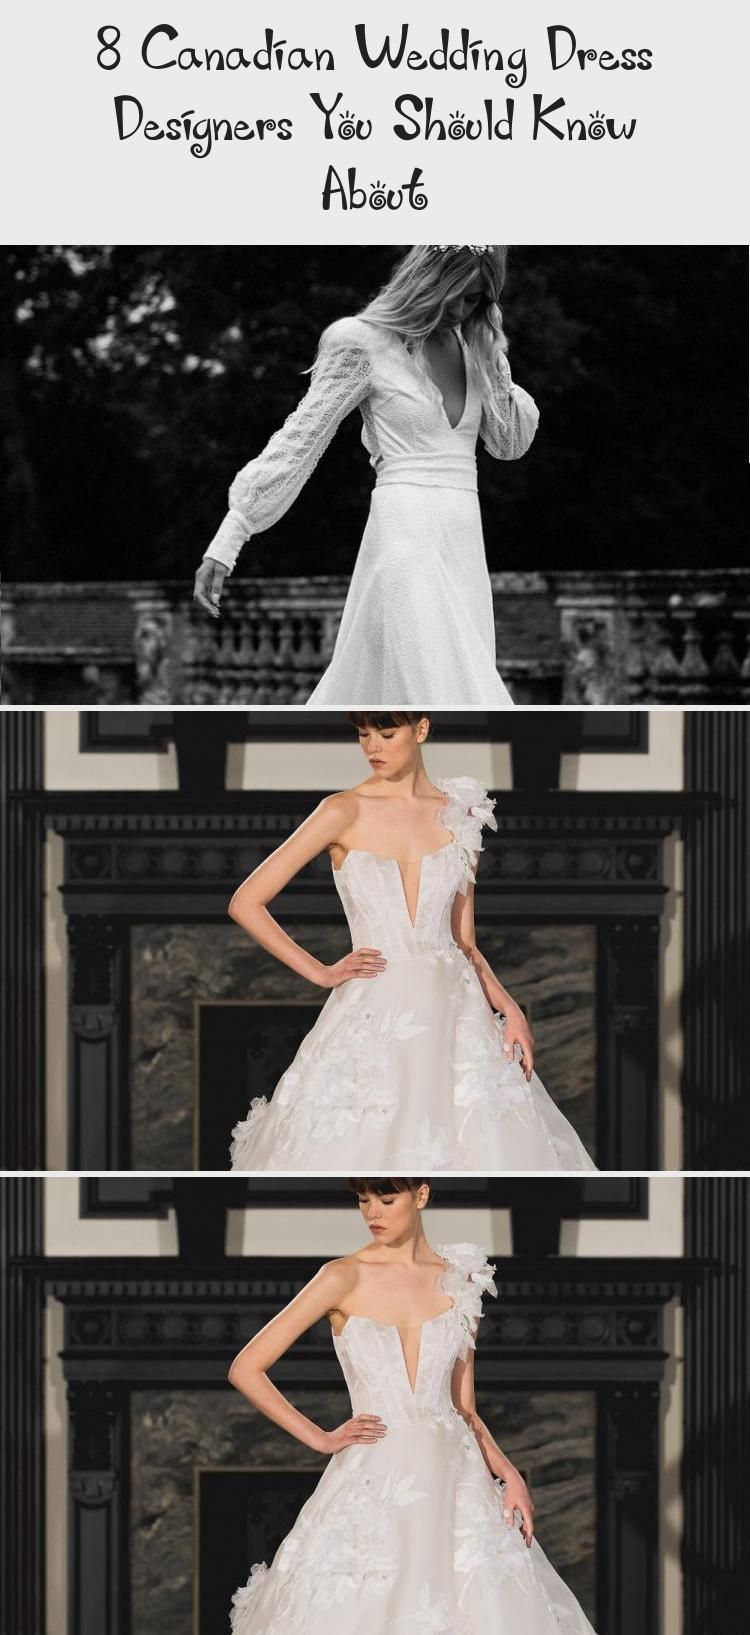 8 Canadian Wedding Dress Designers You Should Know About In 2020 Crop Top Wedding Dress Indie Wedding Dress Designer Wedding Dresses,Black Dress For Winter Wedding